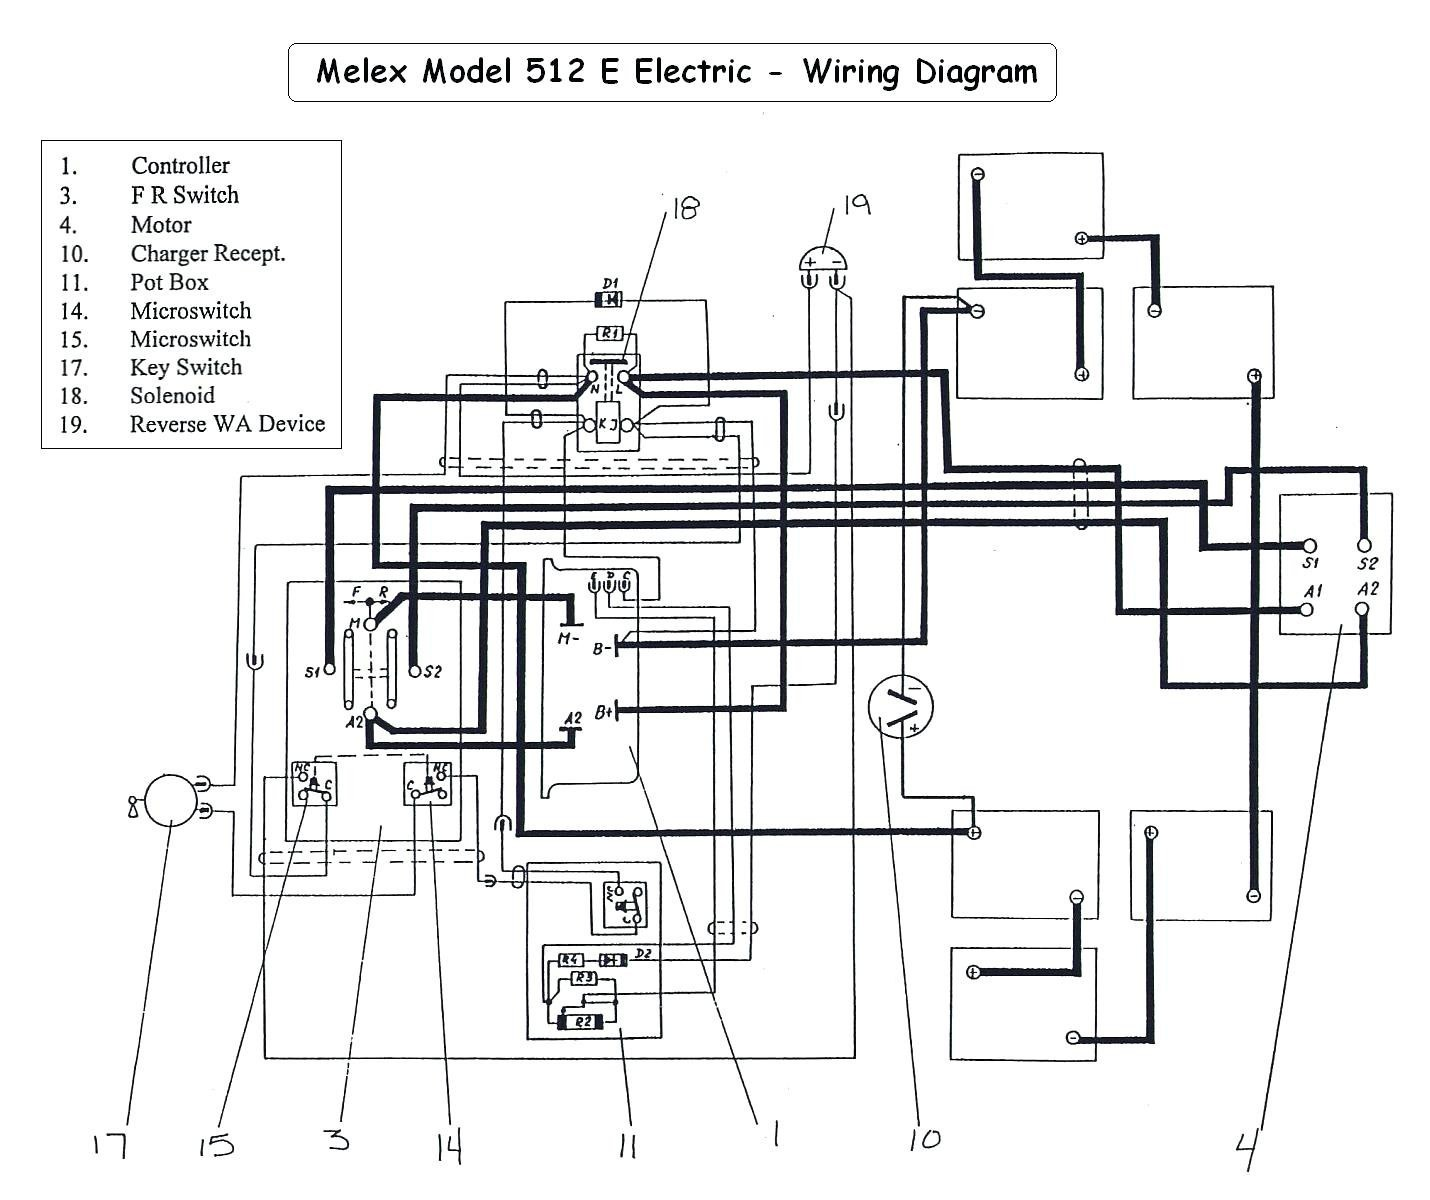 [ZSVE_7041]  Ezgo Txt Gas Wiring Diagram - Wiring Diagram 2000 Lincoln Ls for Wiring  Diagram Schematics | 1992 Ezgo Gas Wiring Diagram |  | Wiring Diagram Schematics